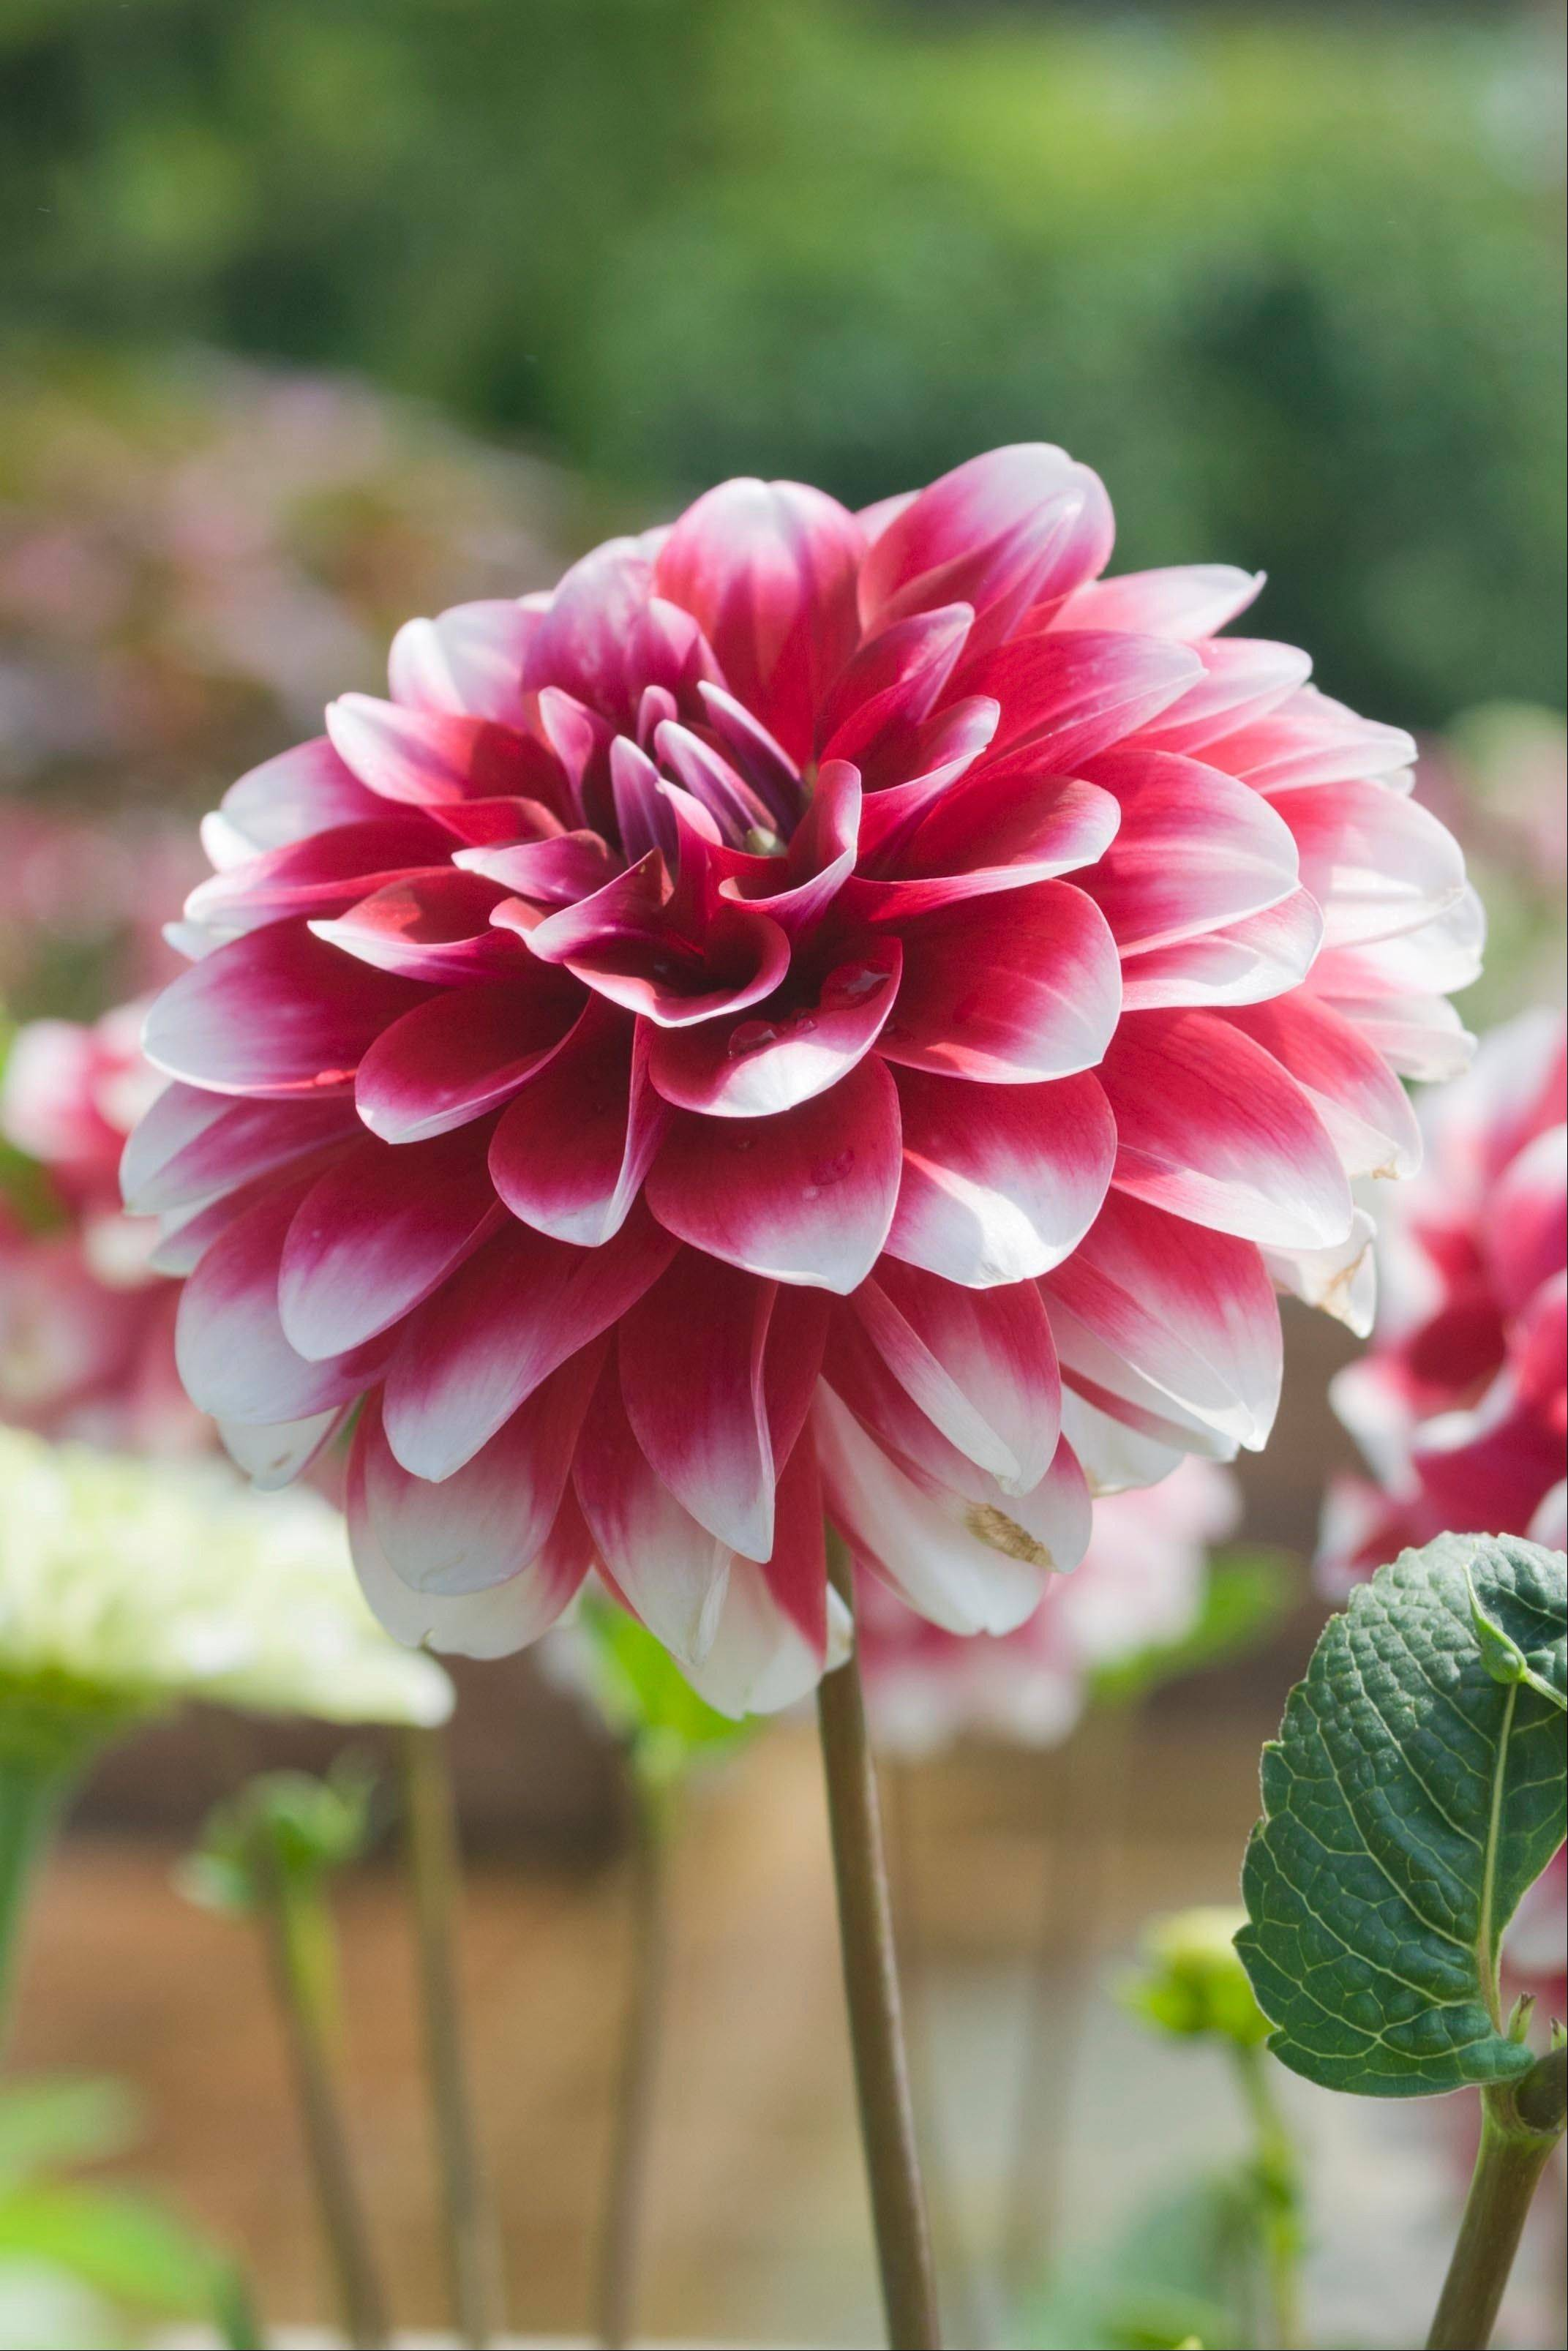 The stem of a dahlia flower should be trimmed of side shoots for maximum bloom growth.